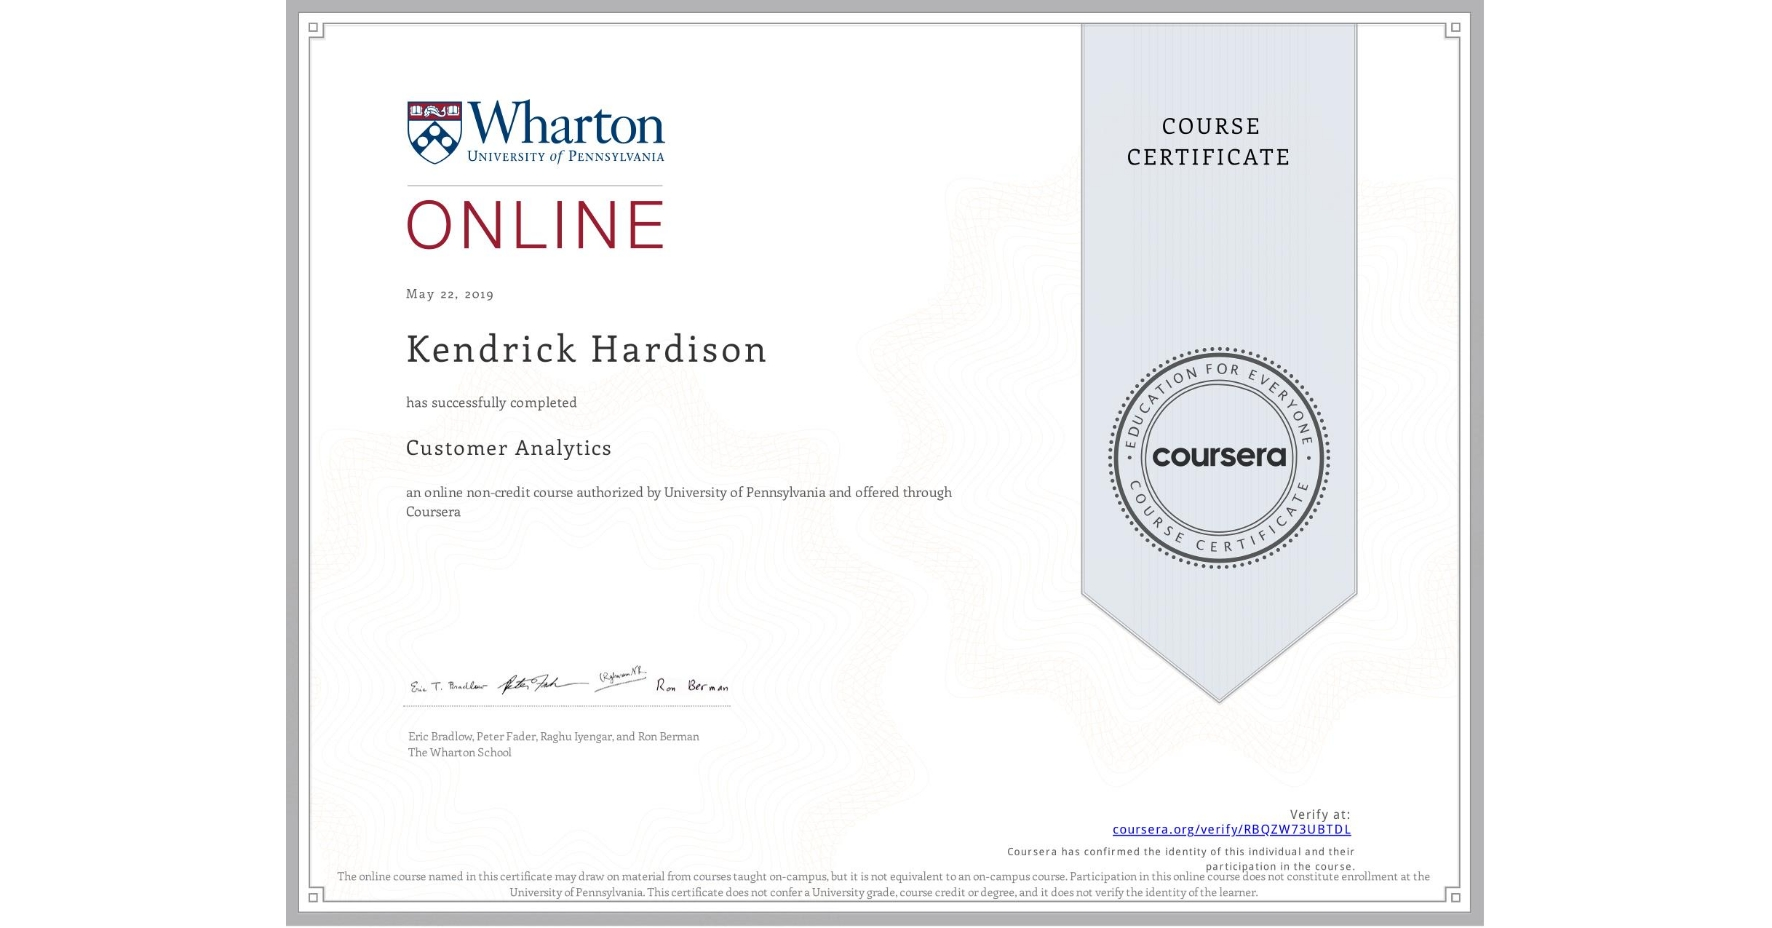 View certificate for Kendrick Hardison, Customer Analytics, an online non-credit course authorized by University of Pennsylvania and offered through Coursera